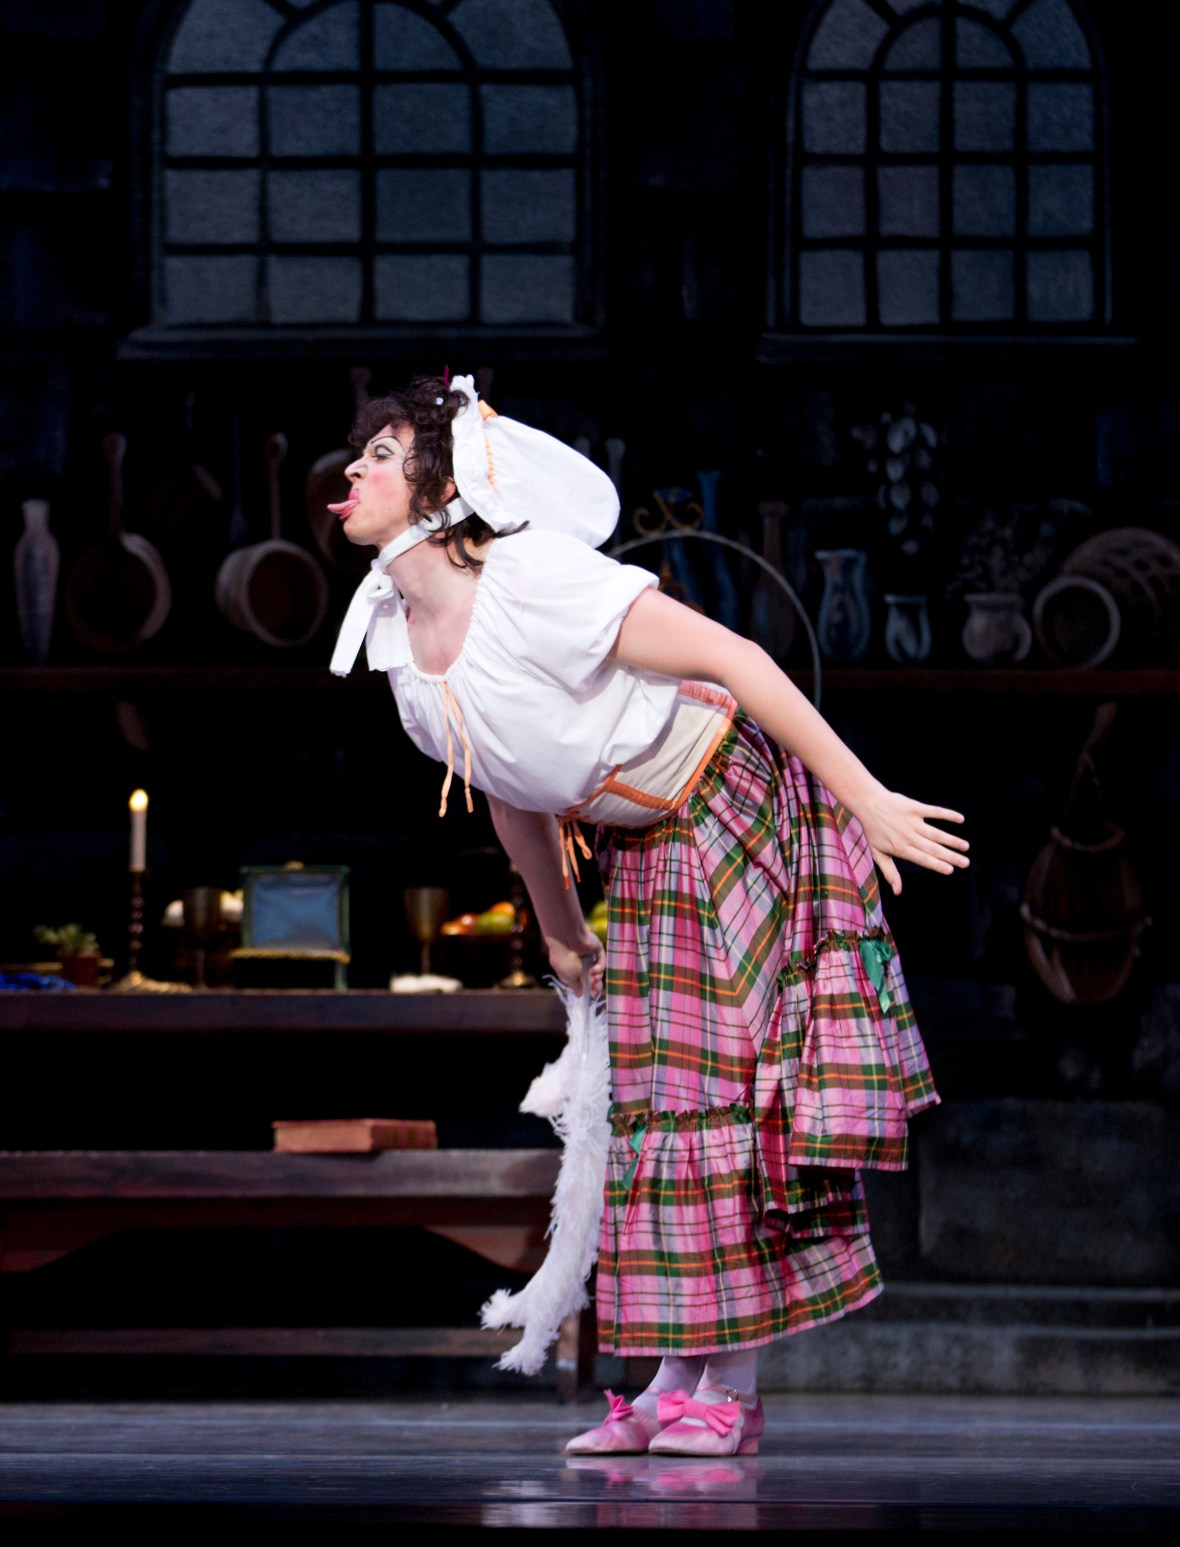 """Brett Bauer (as the """"Ugly Stepsister"""") in the company premiere of Ben Stevenson's Cinderella, running February 28 - March 7, 2015, at Portland's Keller Auditorium. Photo by James McGrew."""